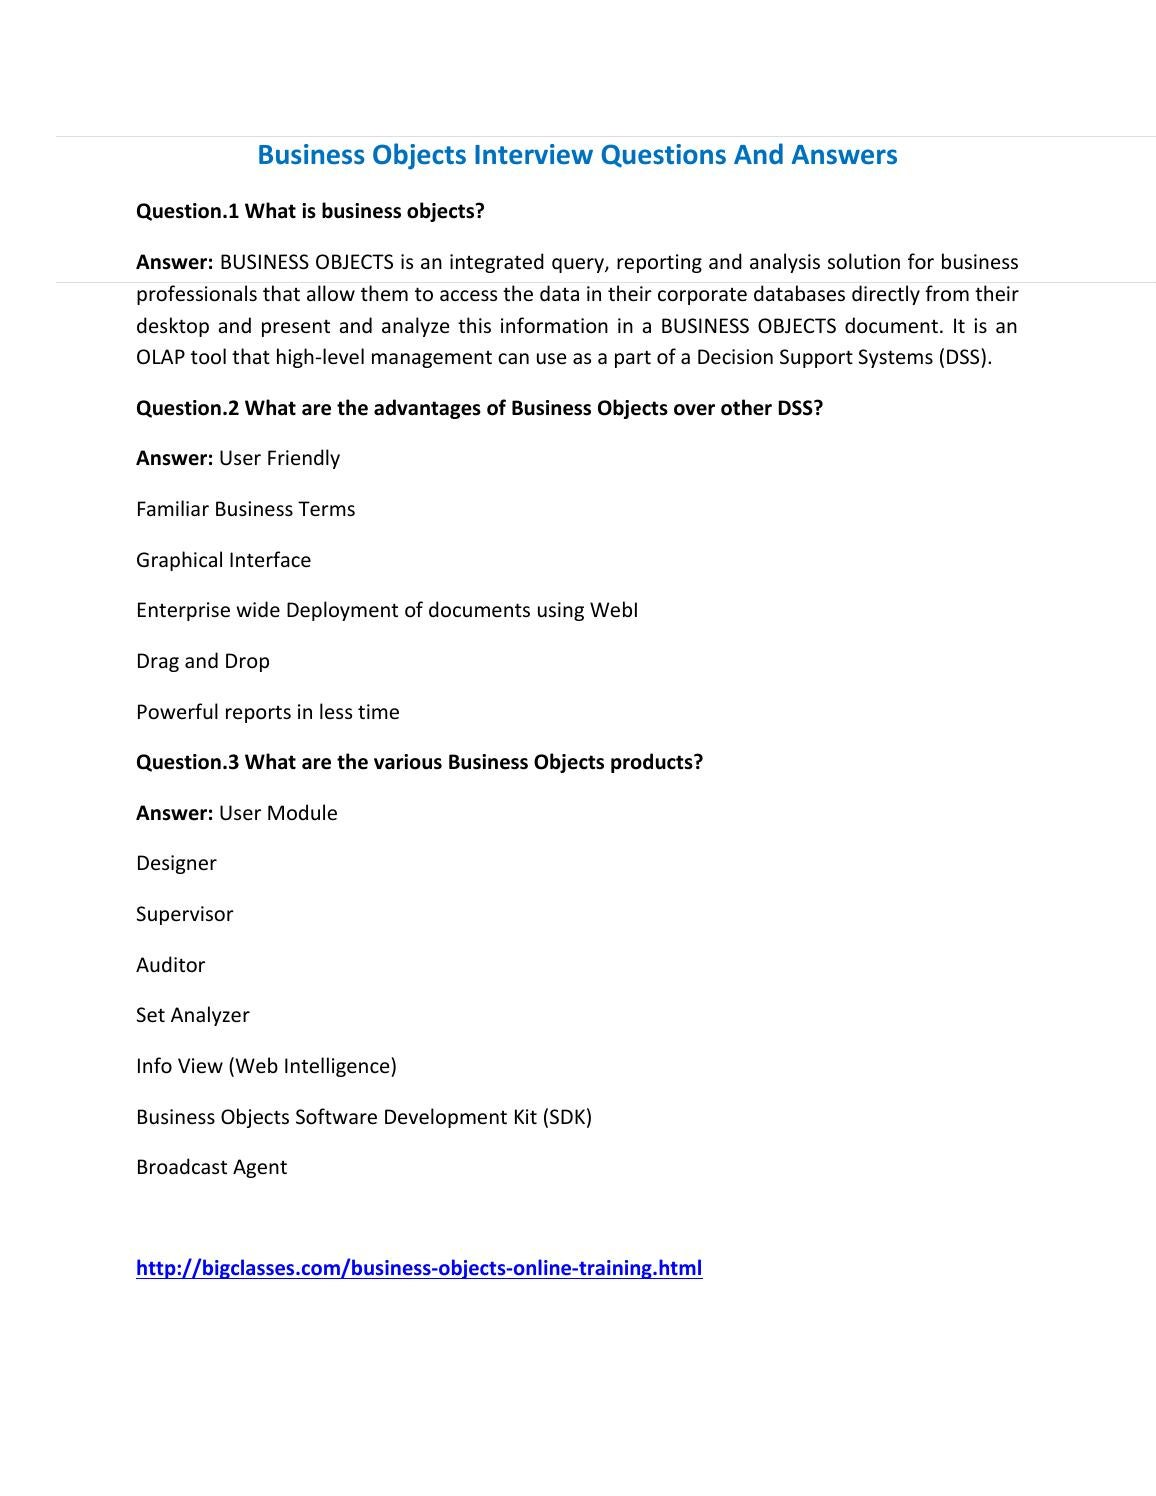 Hyperion Essbase Interview Questions And Answers Pdf